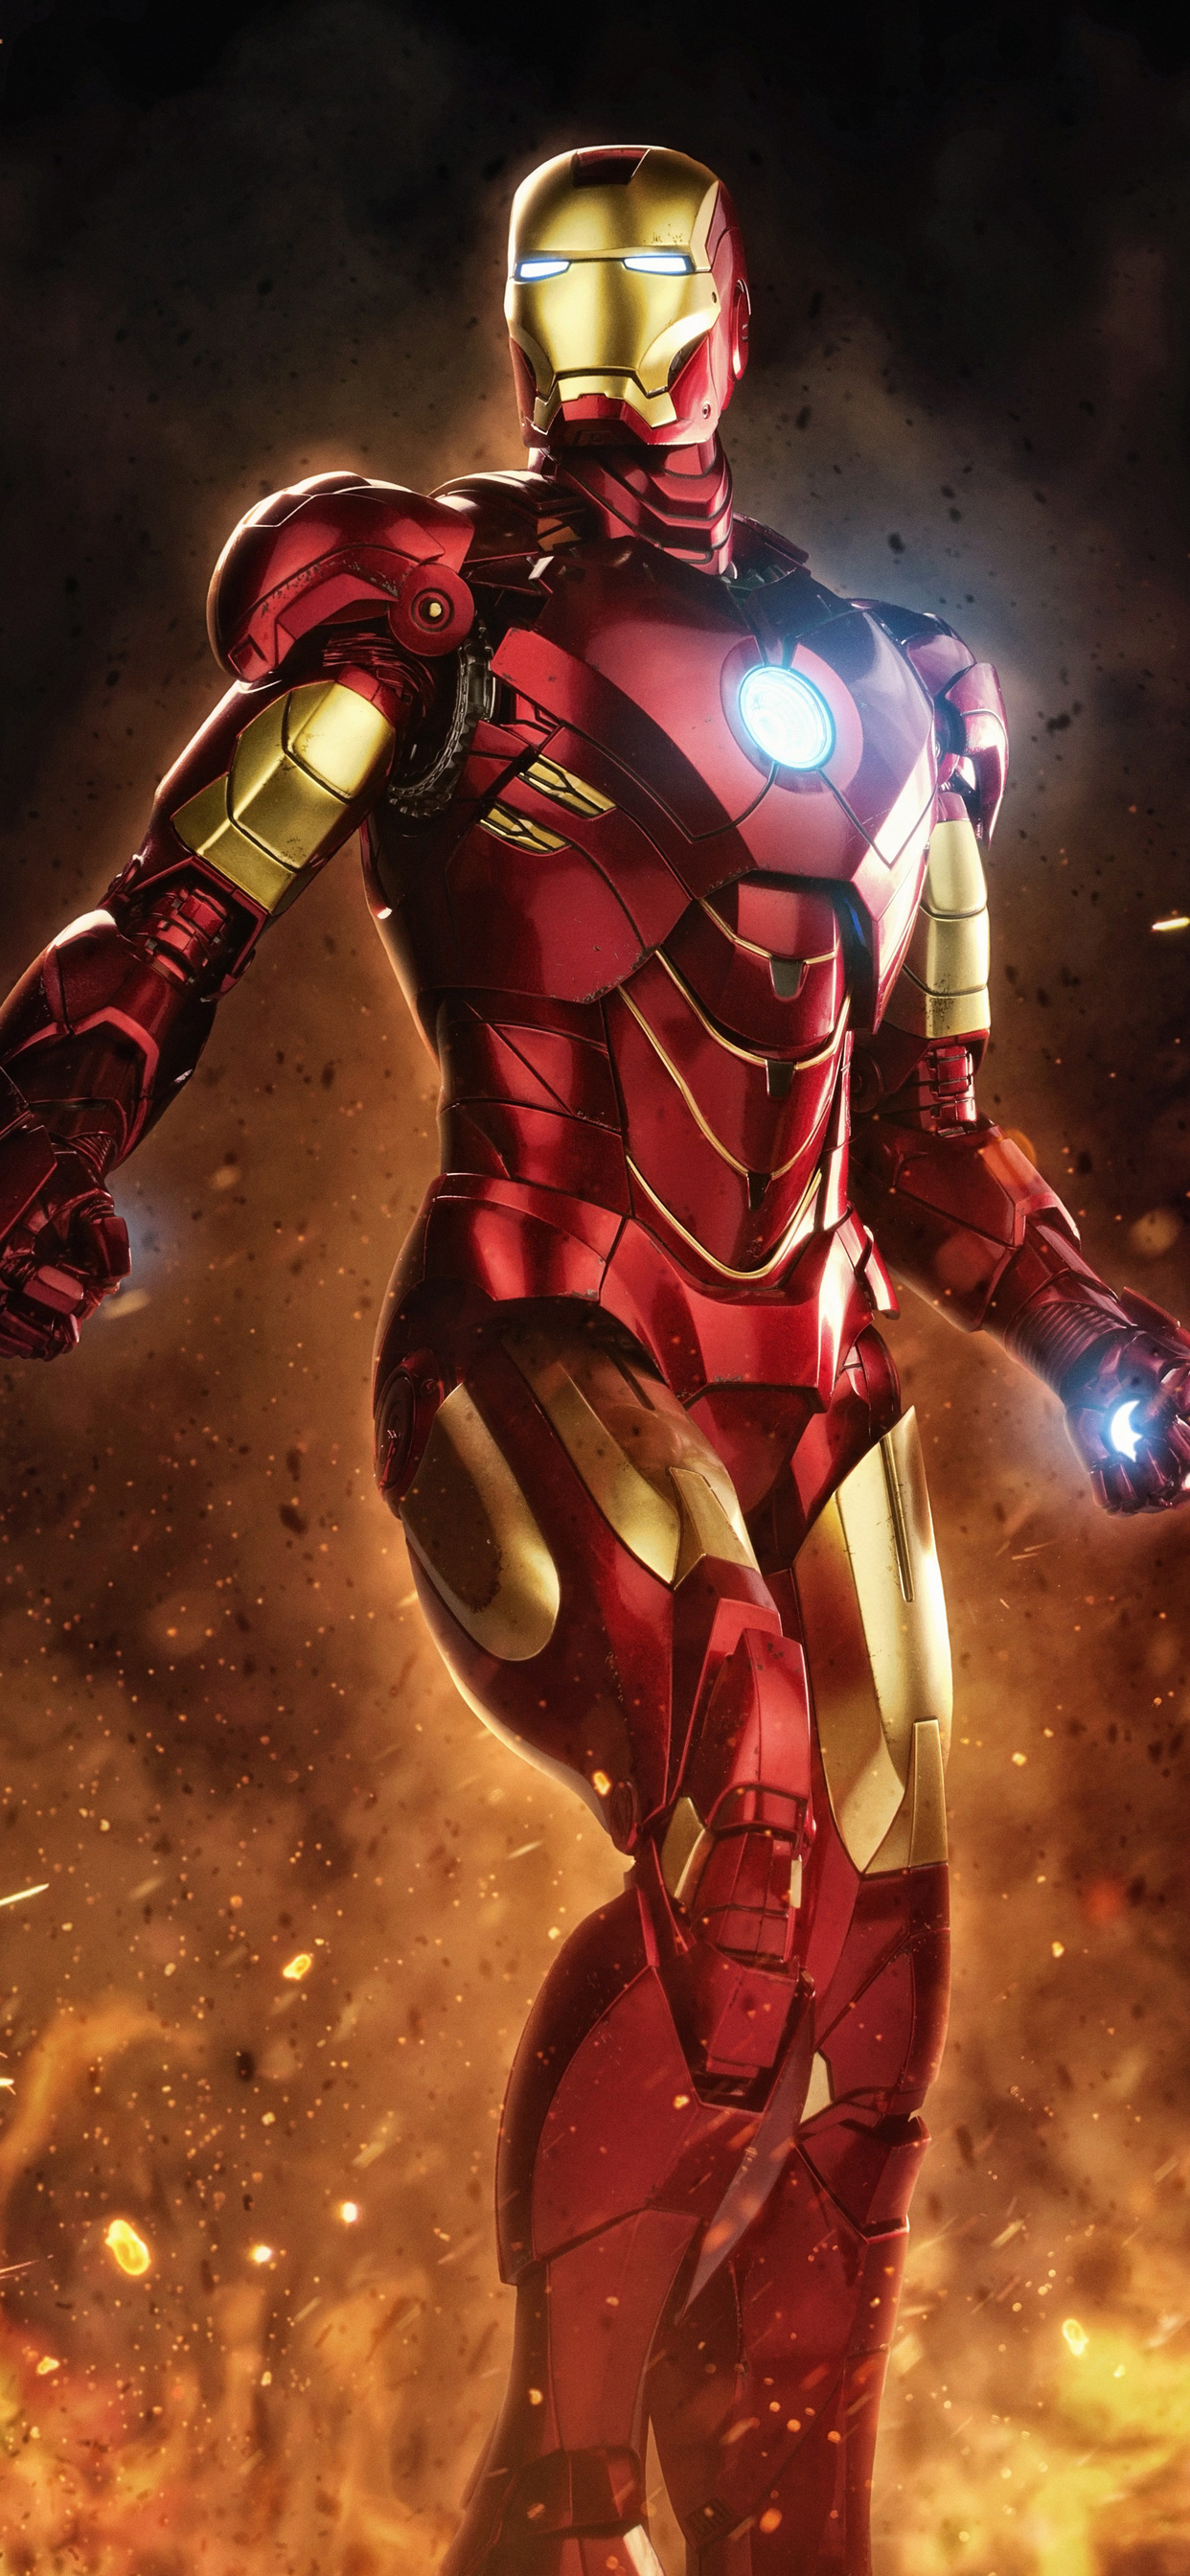 Unduh 9100 Wallpaper Iphone Iron Man 4k Paling Keren